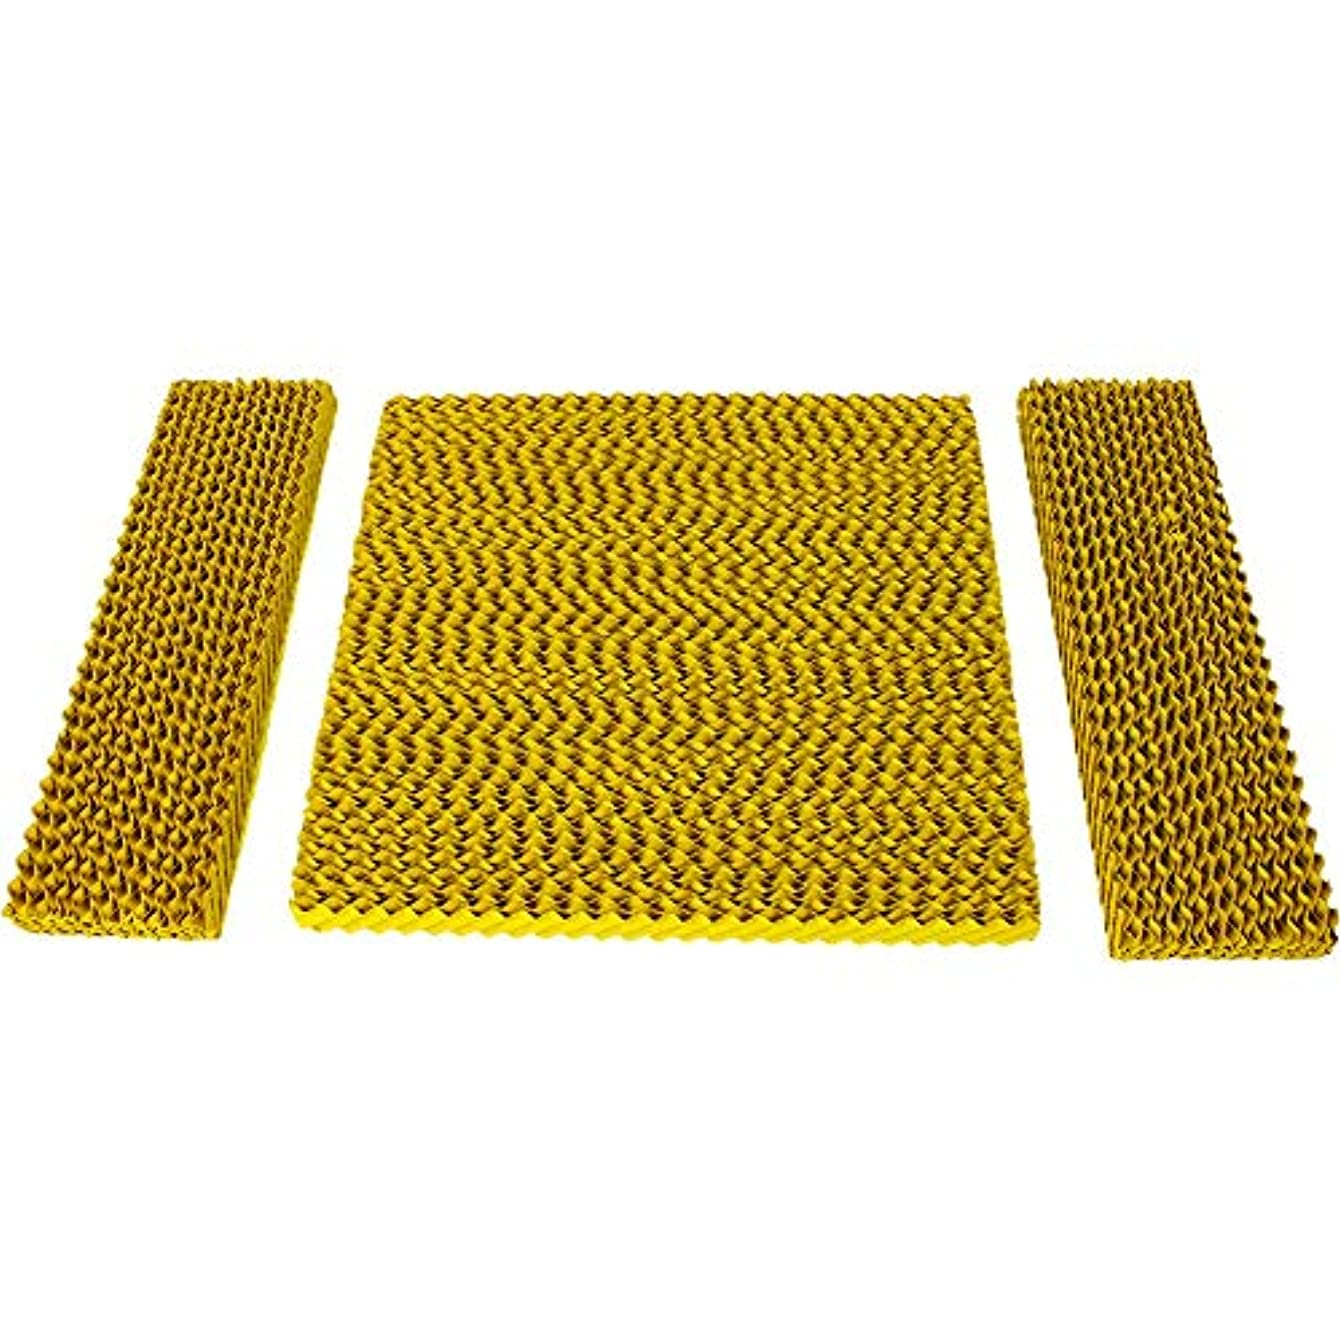 Replacement Cooling Pads for CO48PM Evaporative Cooler